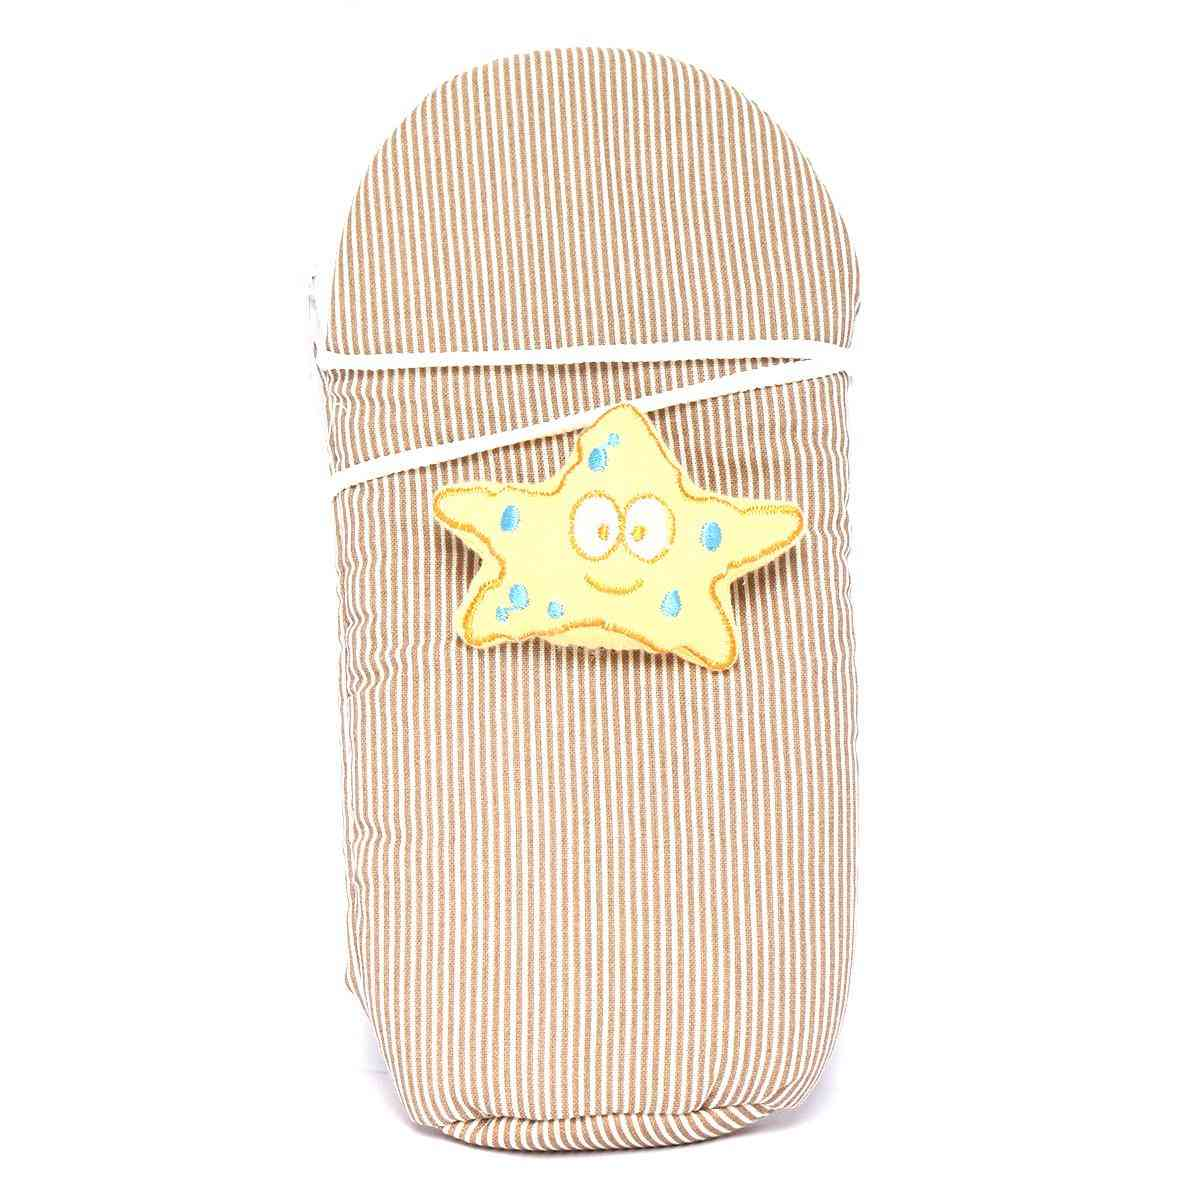 Vitamin Baby Cartoon Character 9x4 Inches Feeder Cover for Feeder Bottle with String  Brown